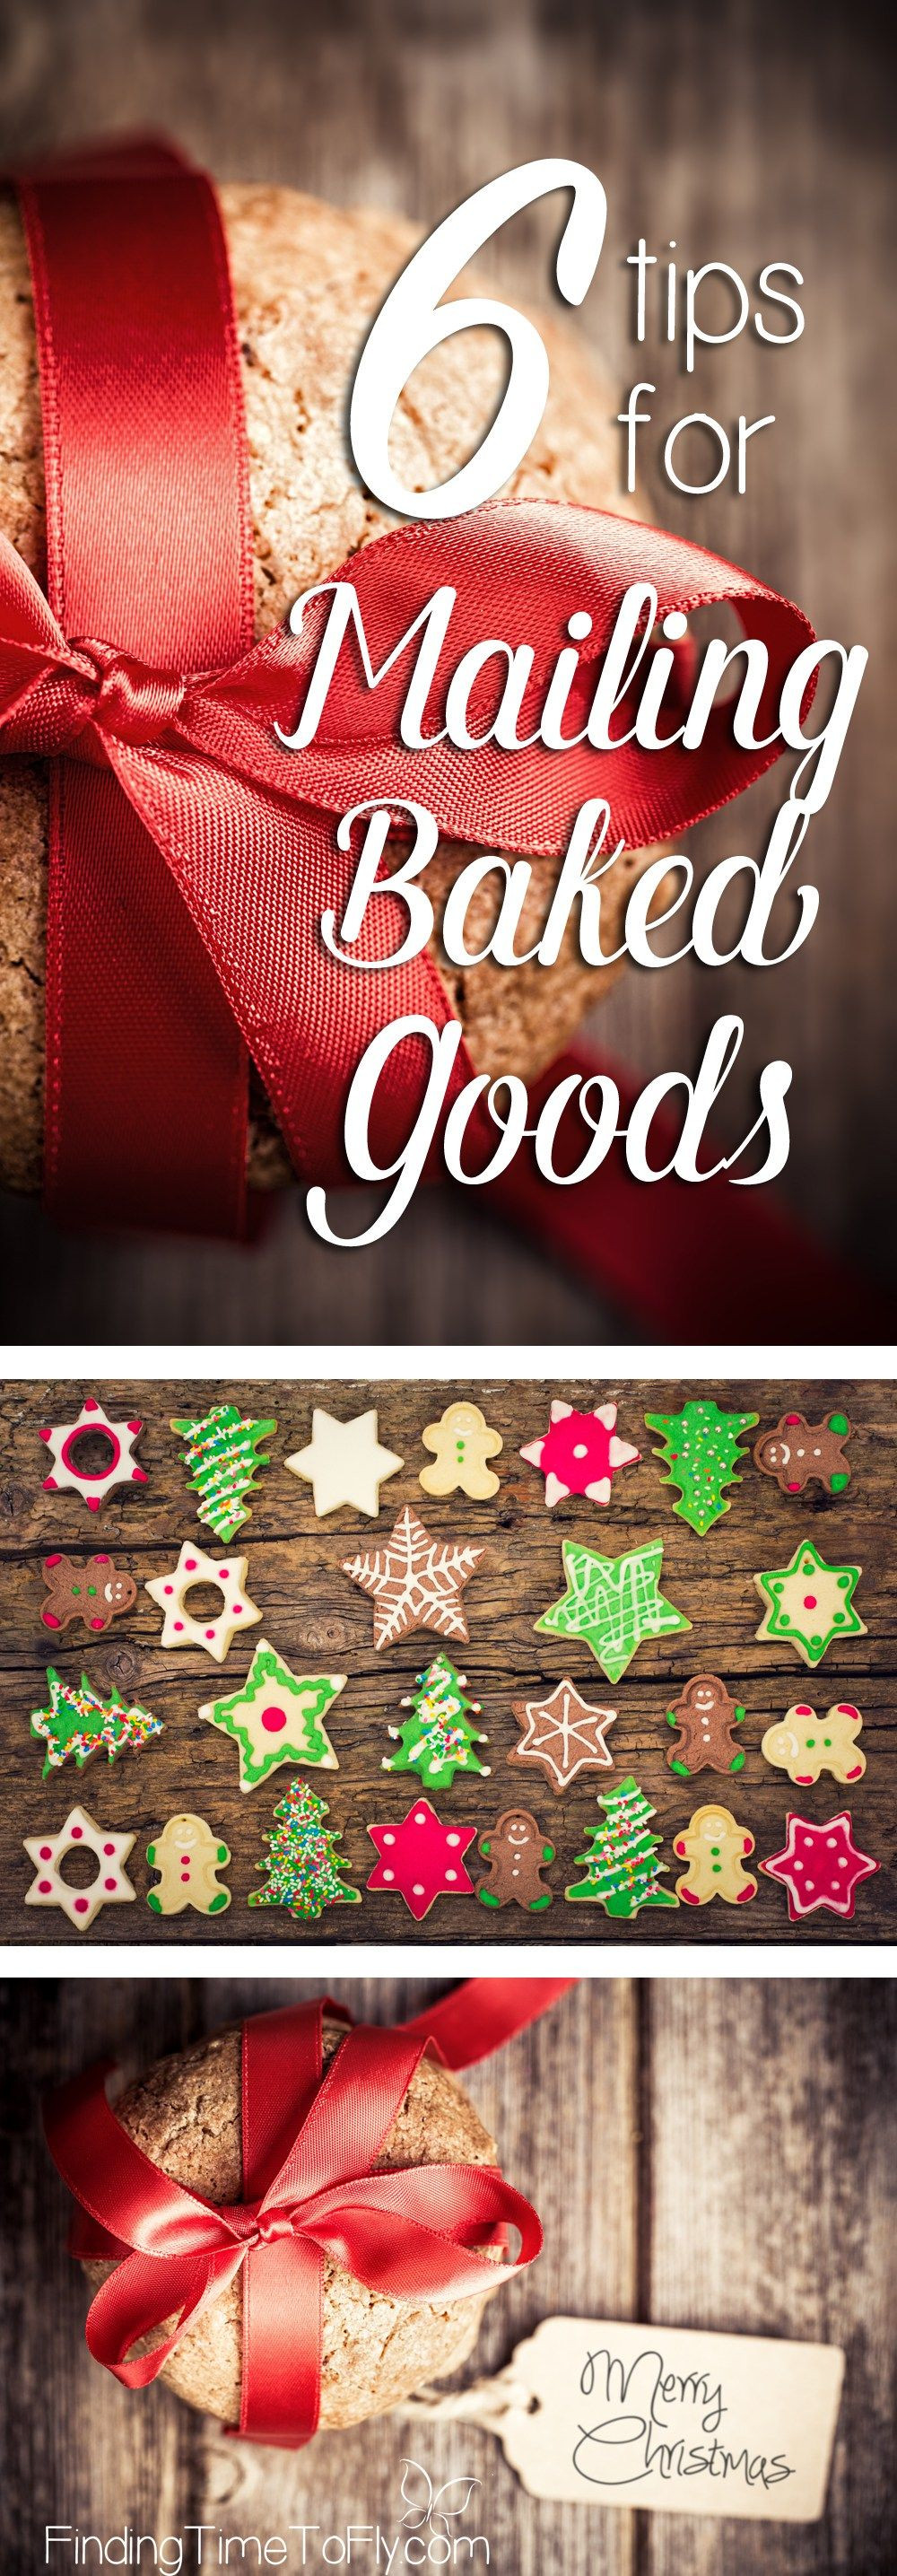 Send Christmas Cookies  6 Tips for Mailing Baked Goods